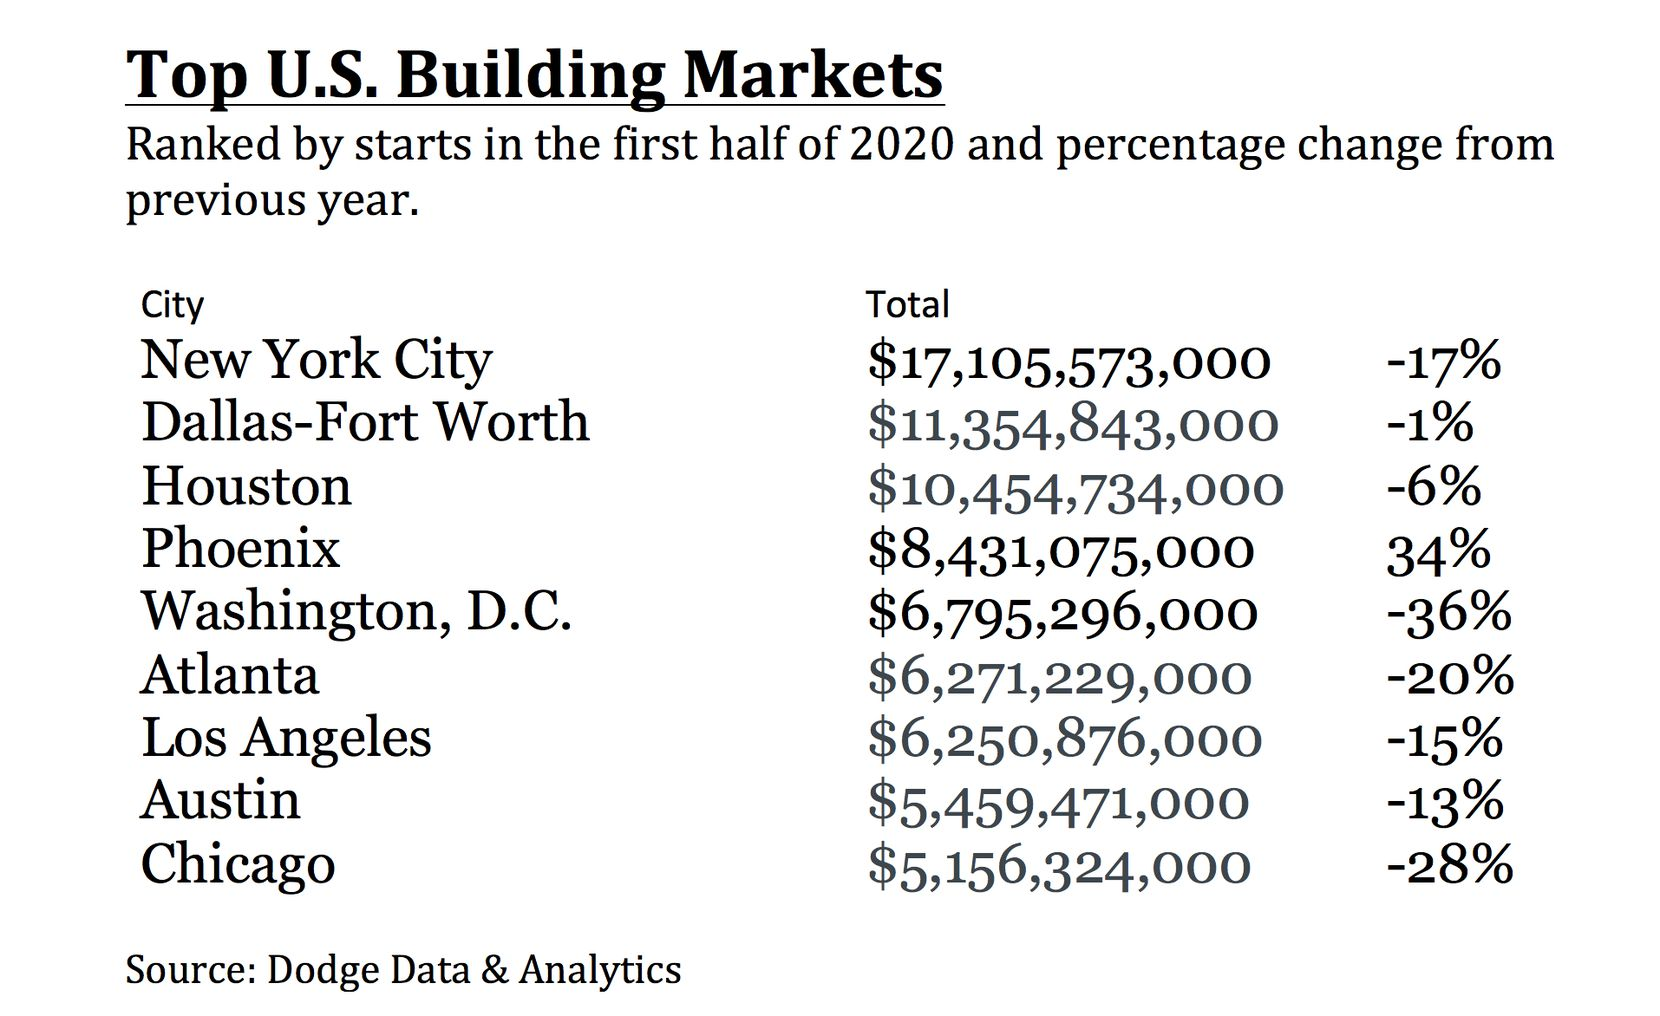 D-FW was behind only New York for building starts in the first half of 2020.